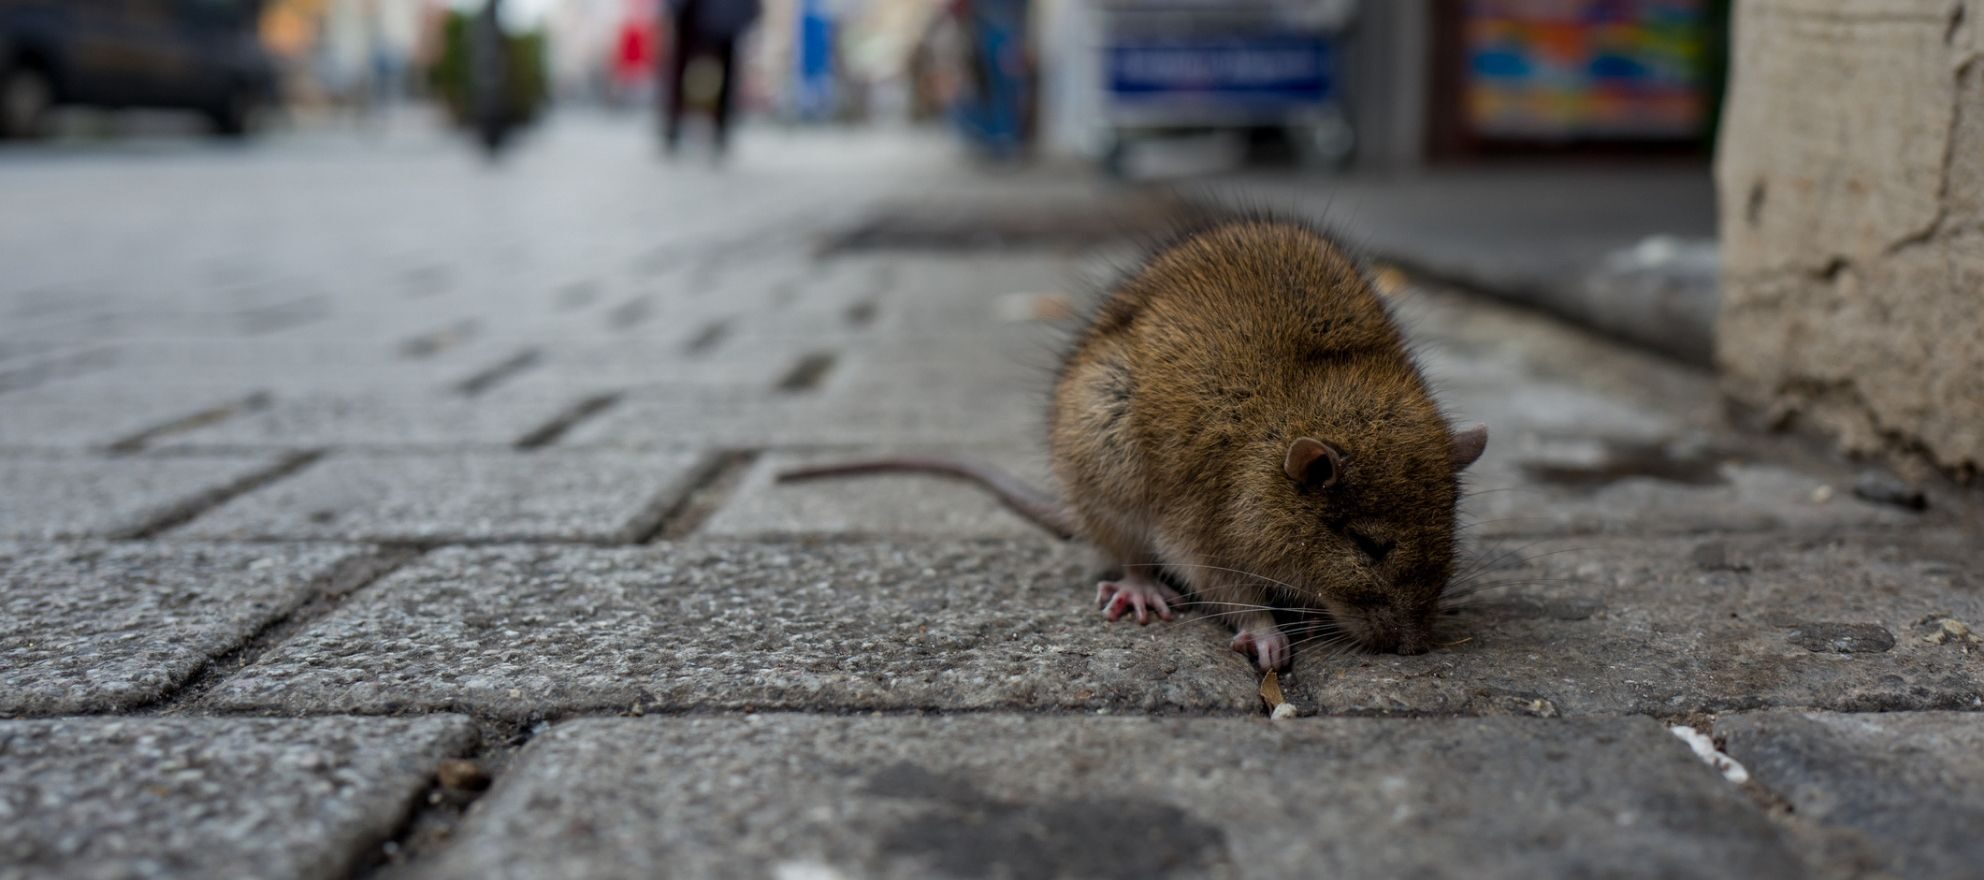 Which American city has the most rats? (Hint: It's not Baltimore)